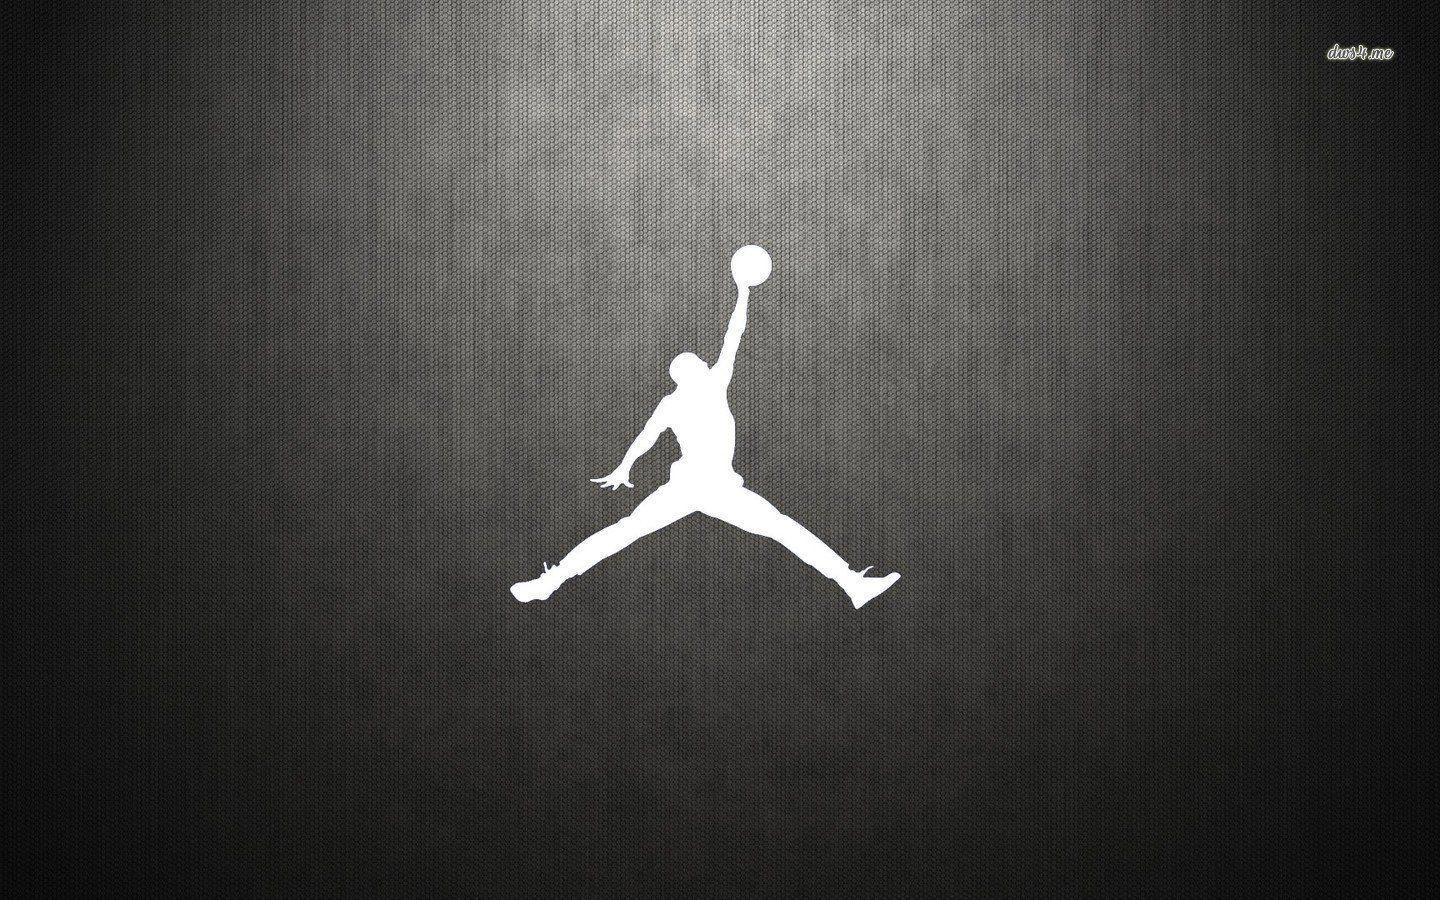 Jumpman Logo Wallpapers 1440x900